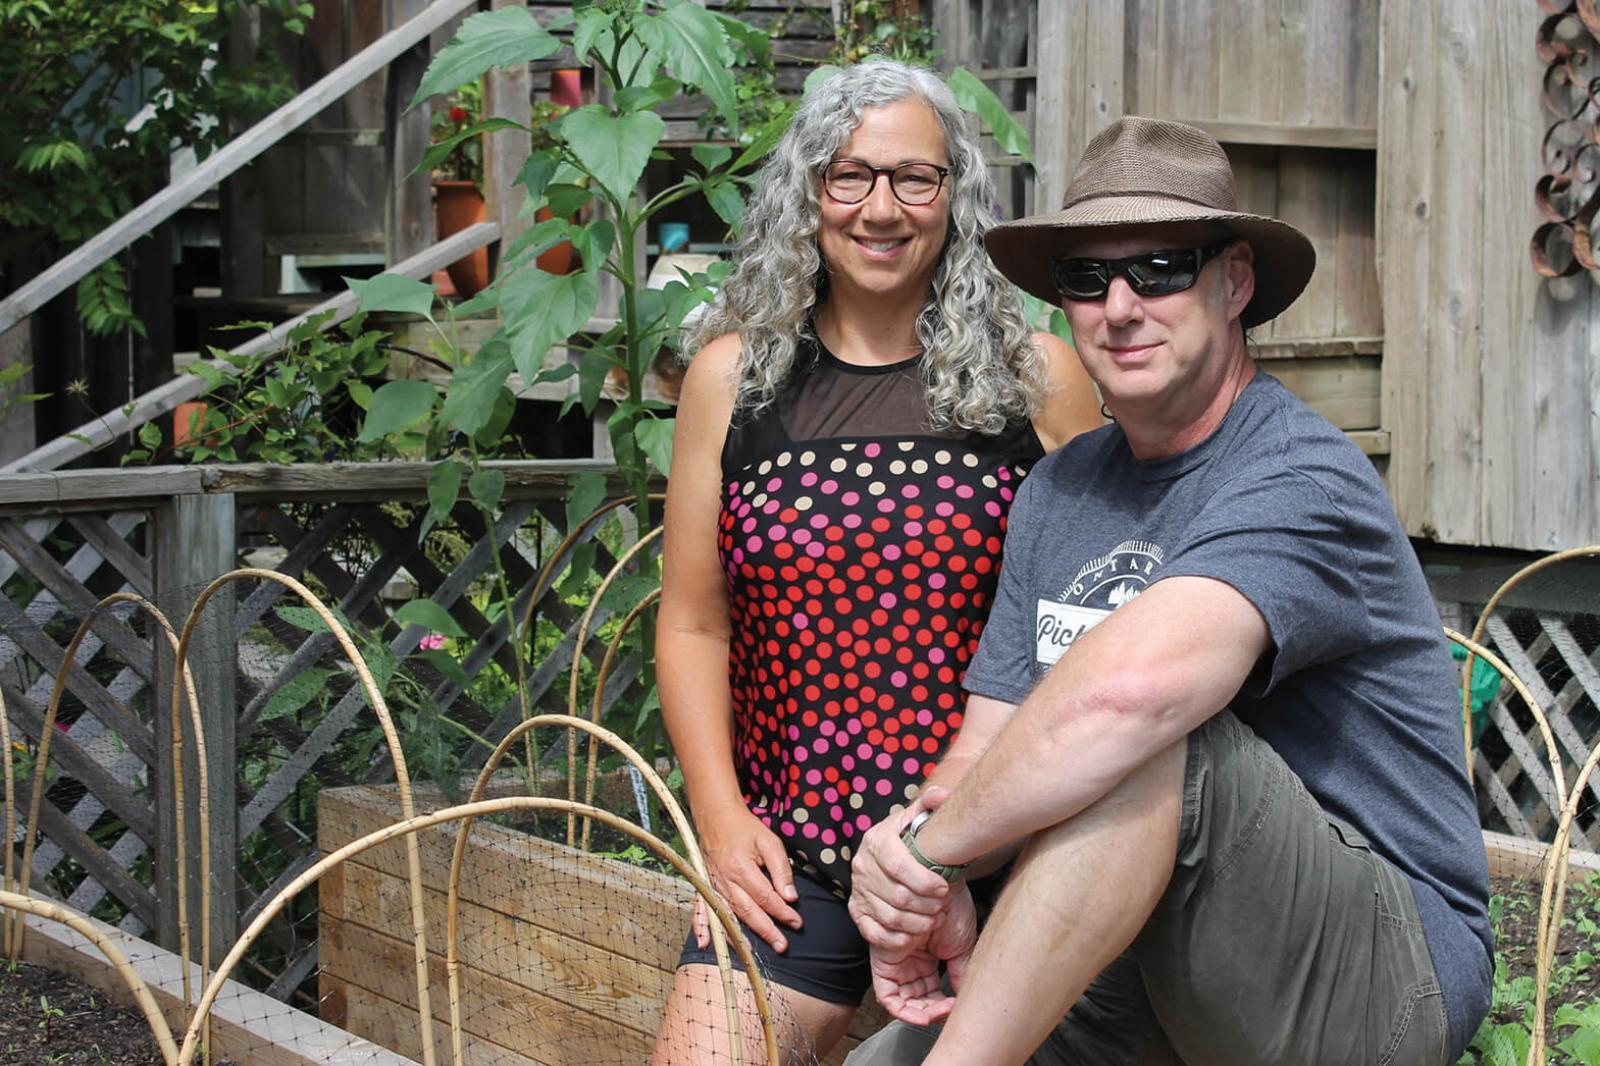 Member profile: The Backyard Urban Farm Company